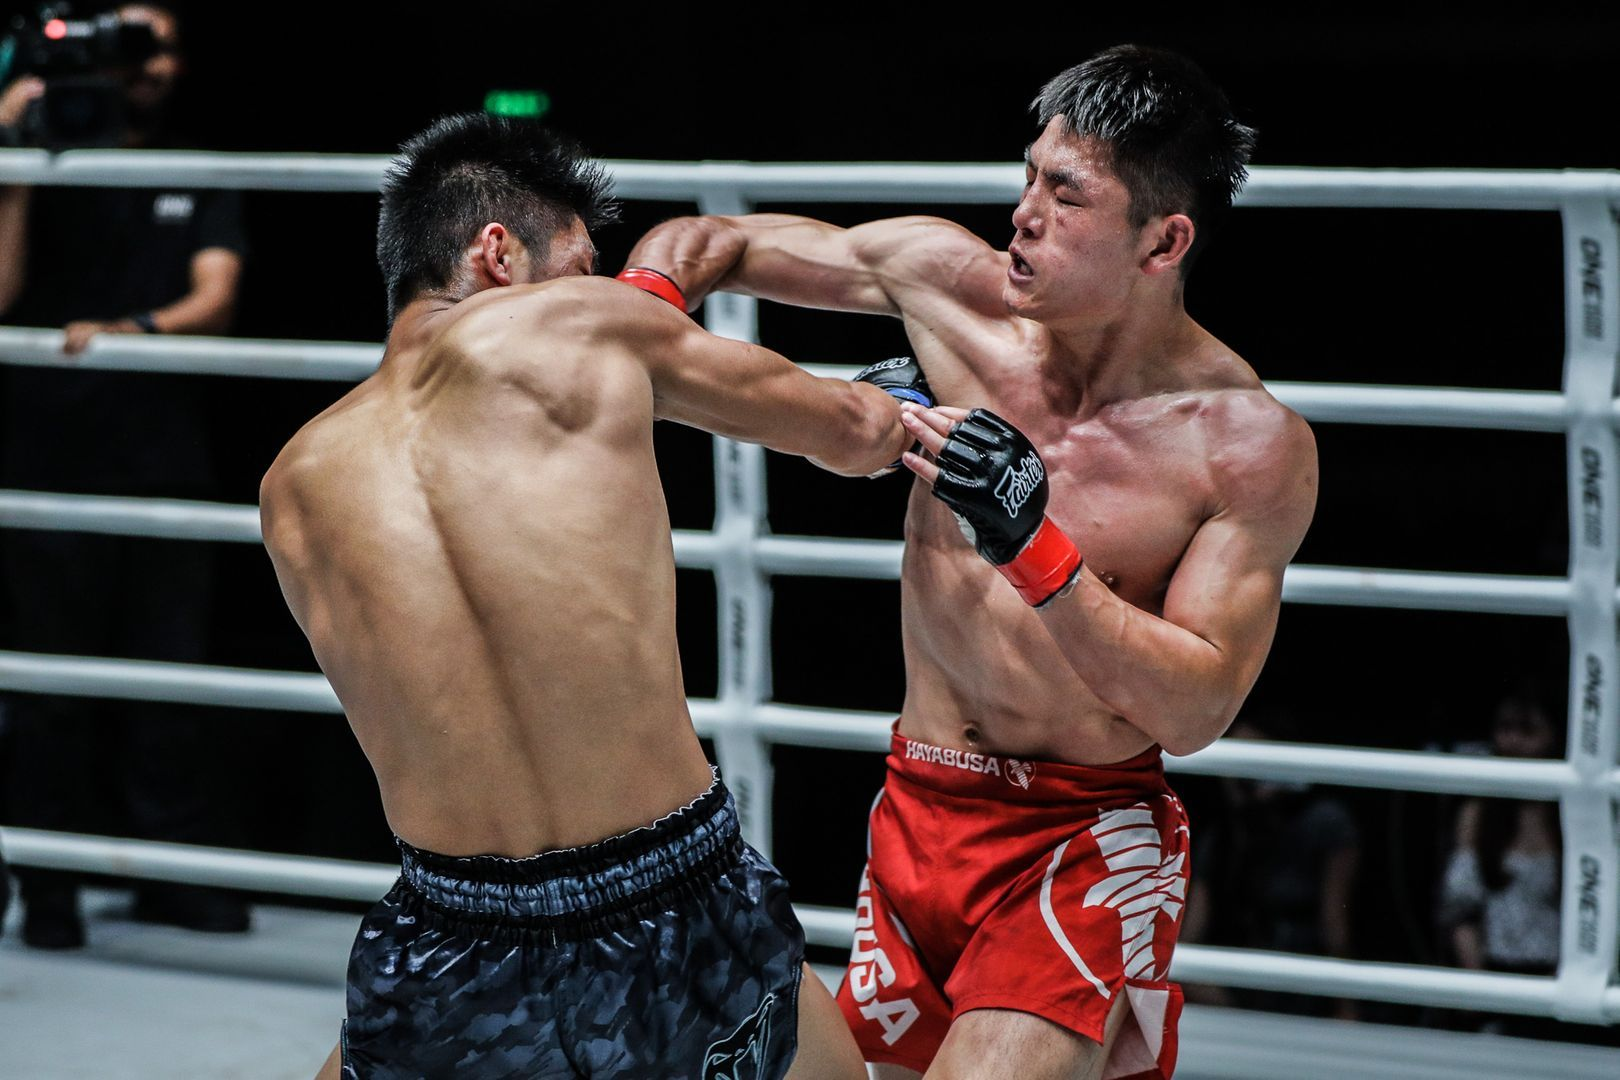 Fu Qing Nan defeats Liu Wei in the OHS June main event